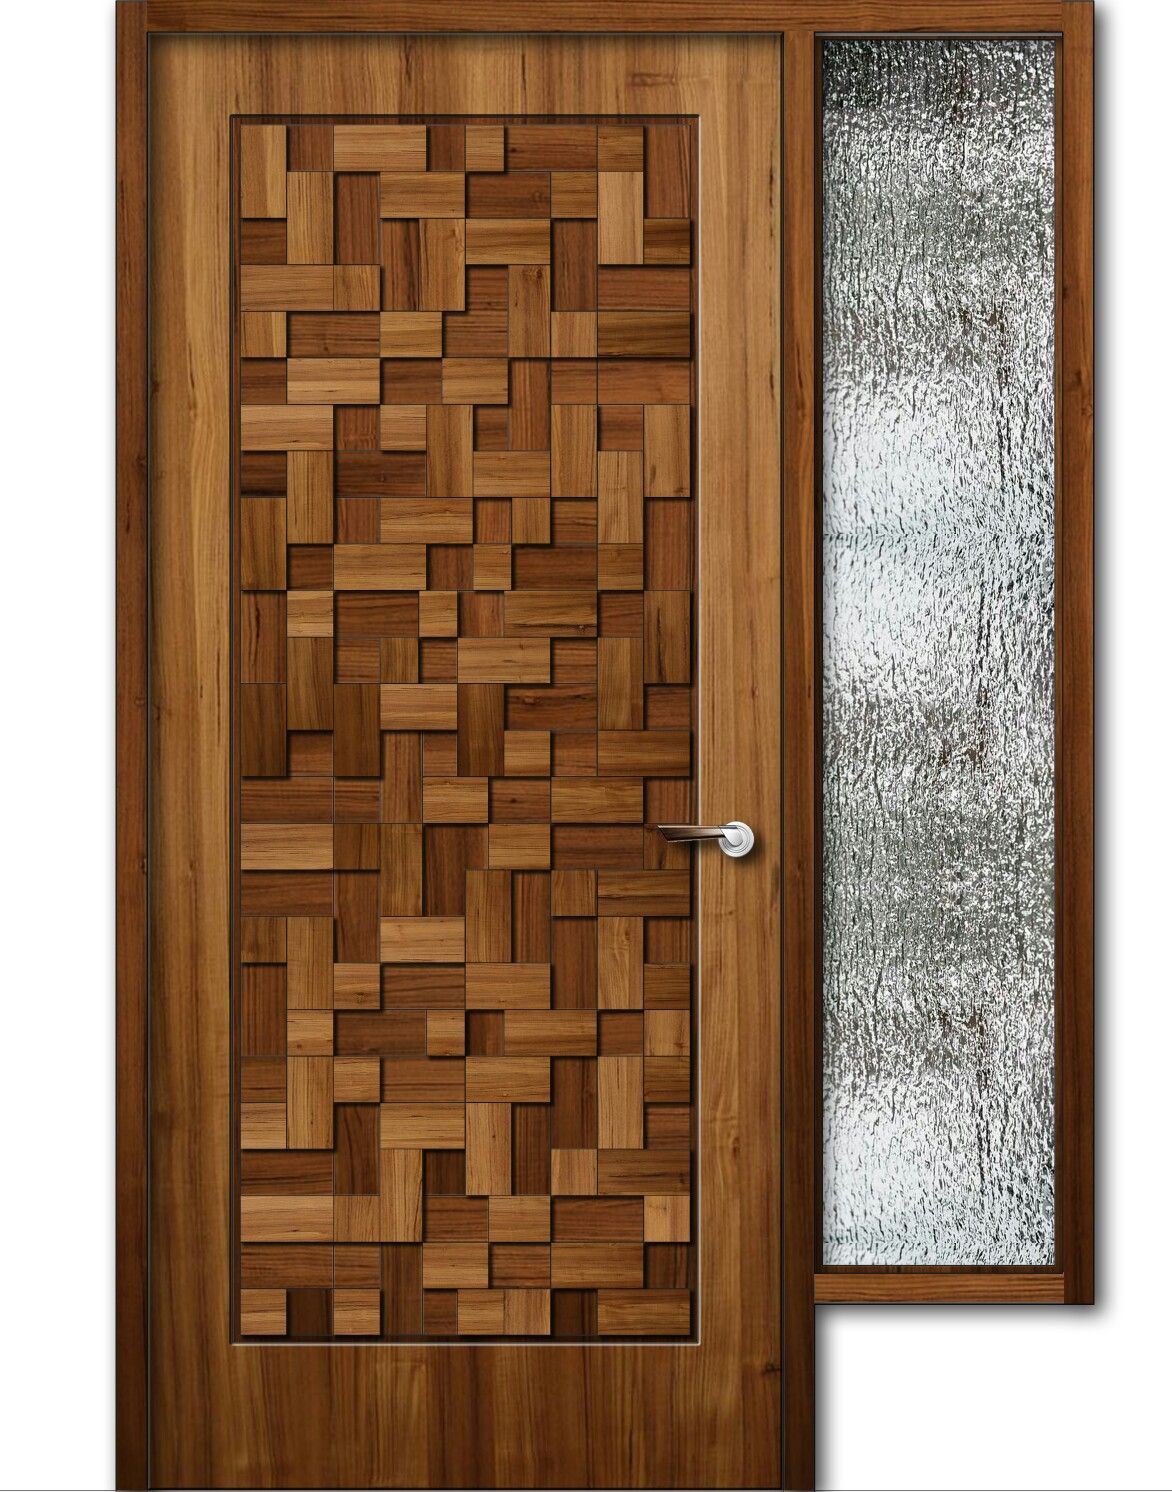 Teak wood finish wooden door with window 8feet height for Wood doors and windows